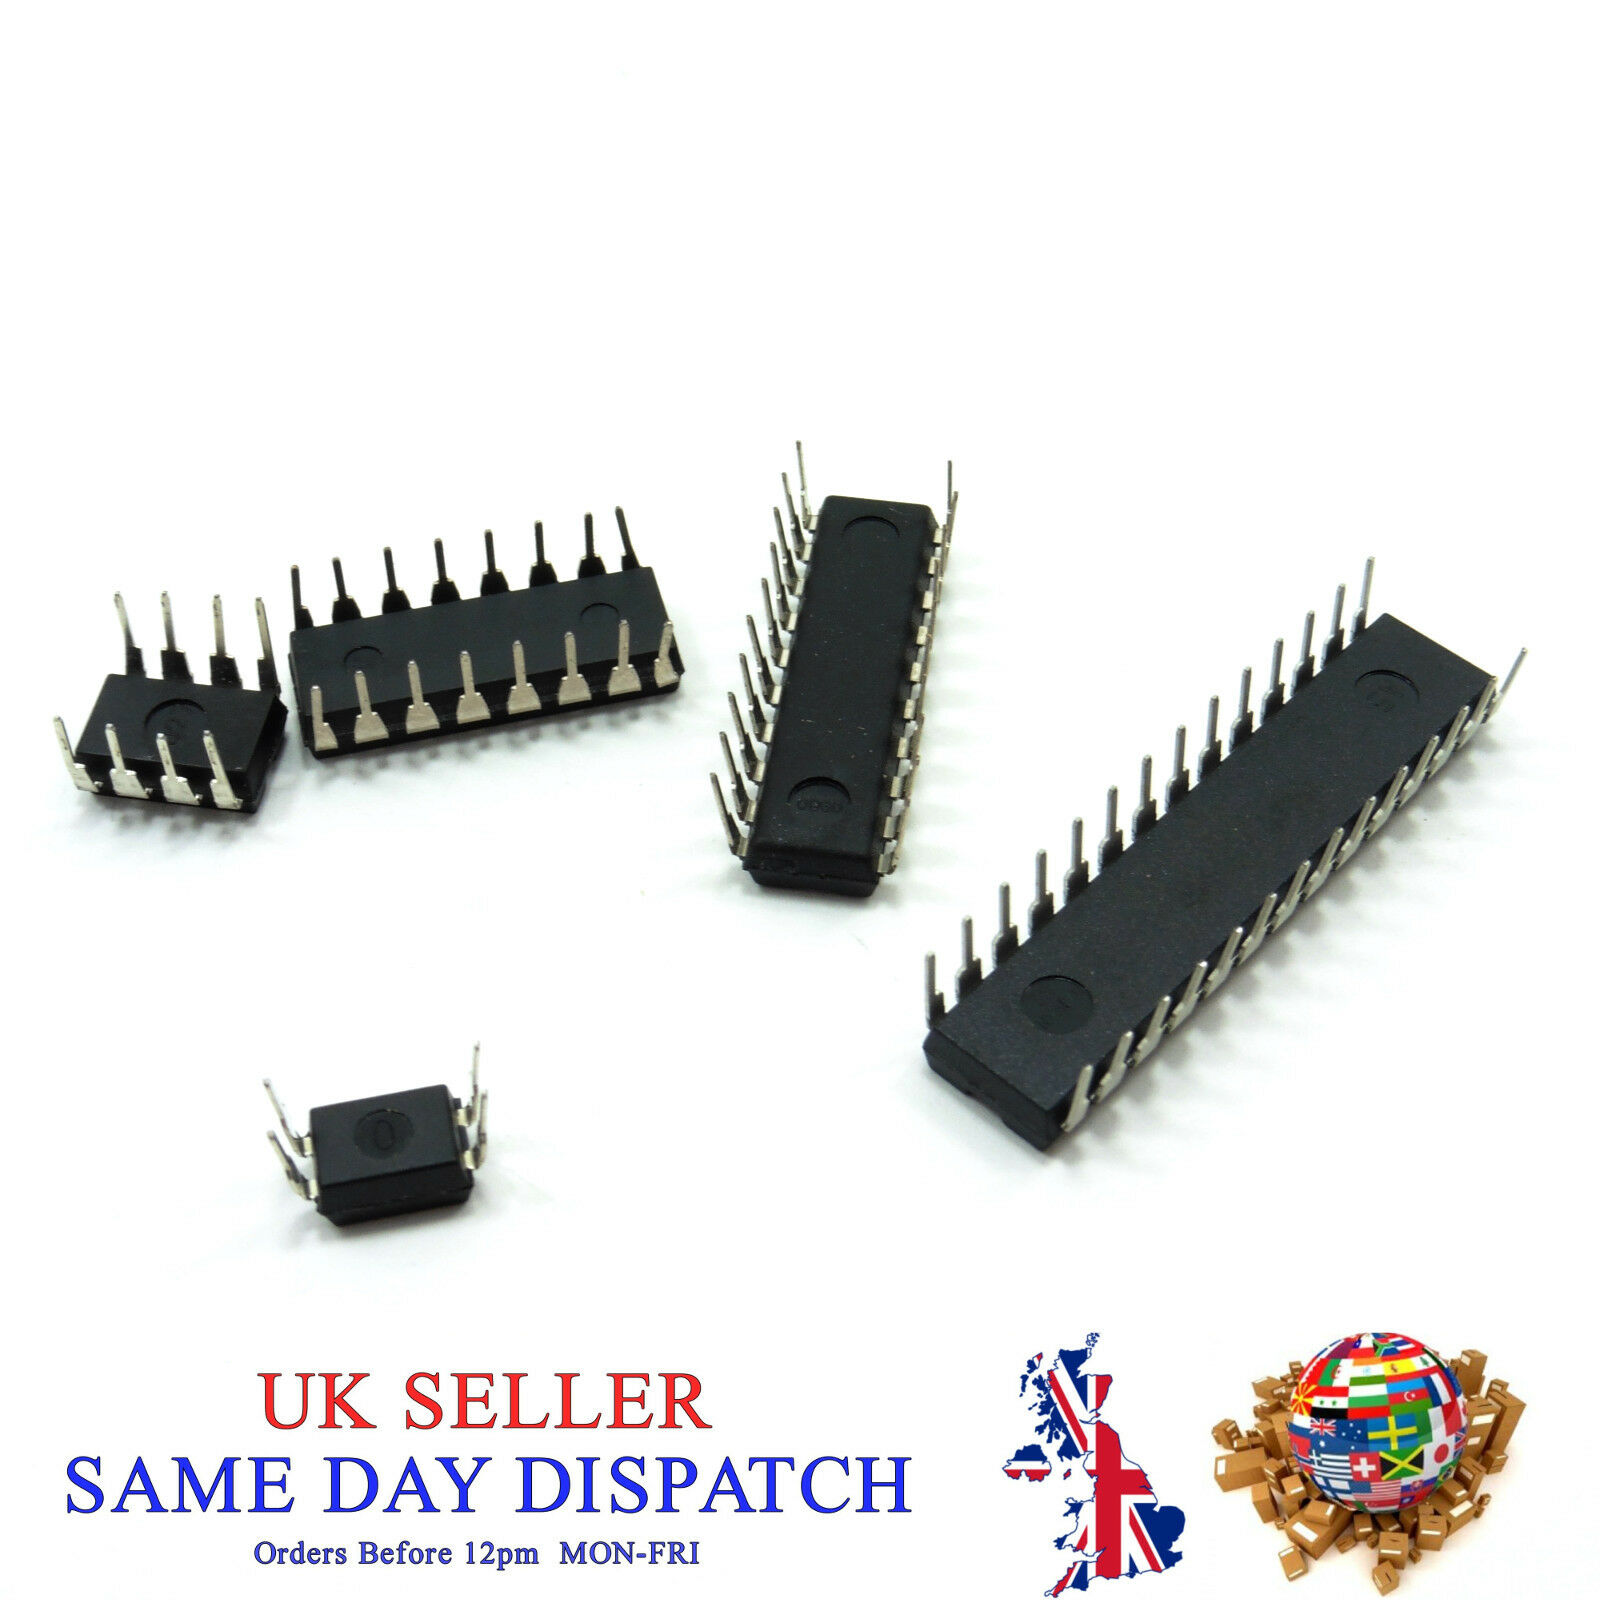 Ic Chips 4 8 14 16 20 Pin 2 Wire Serial Dip Integrated Circuits Different 1 Of 1free Shipping See More